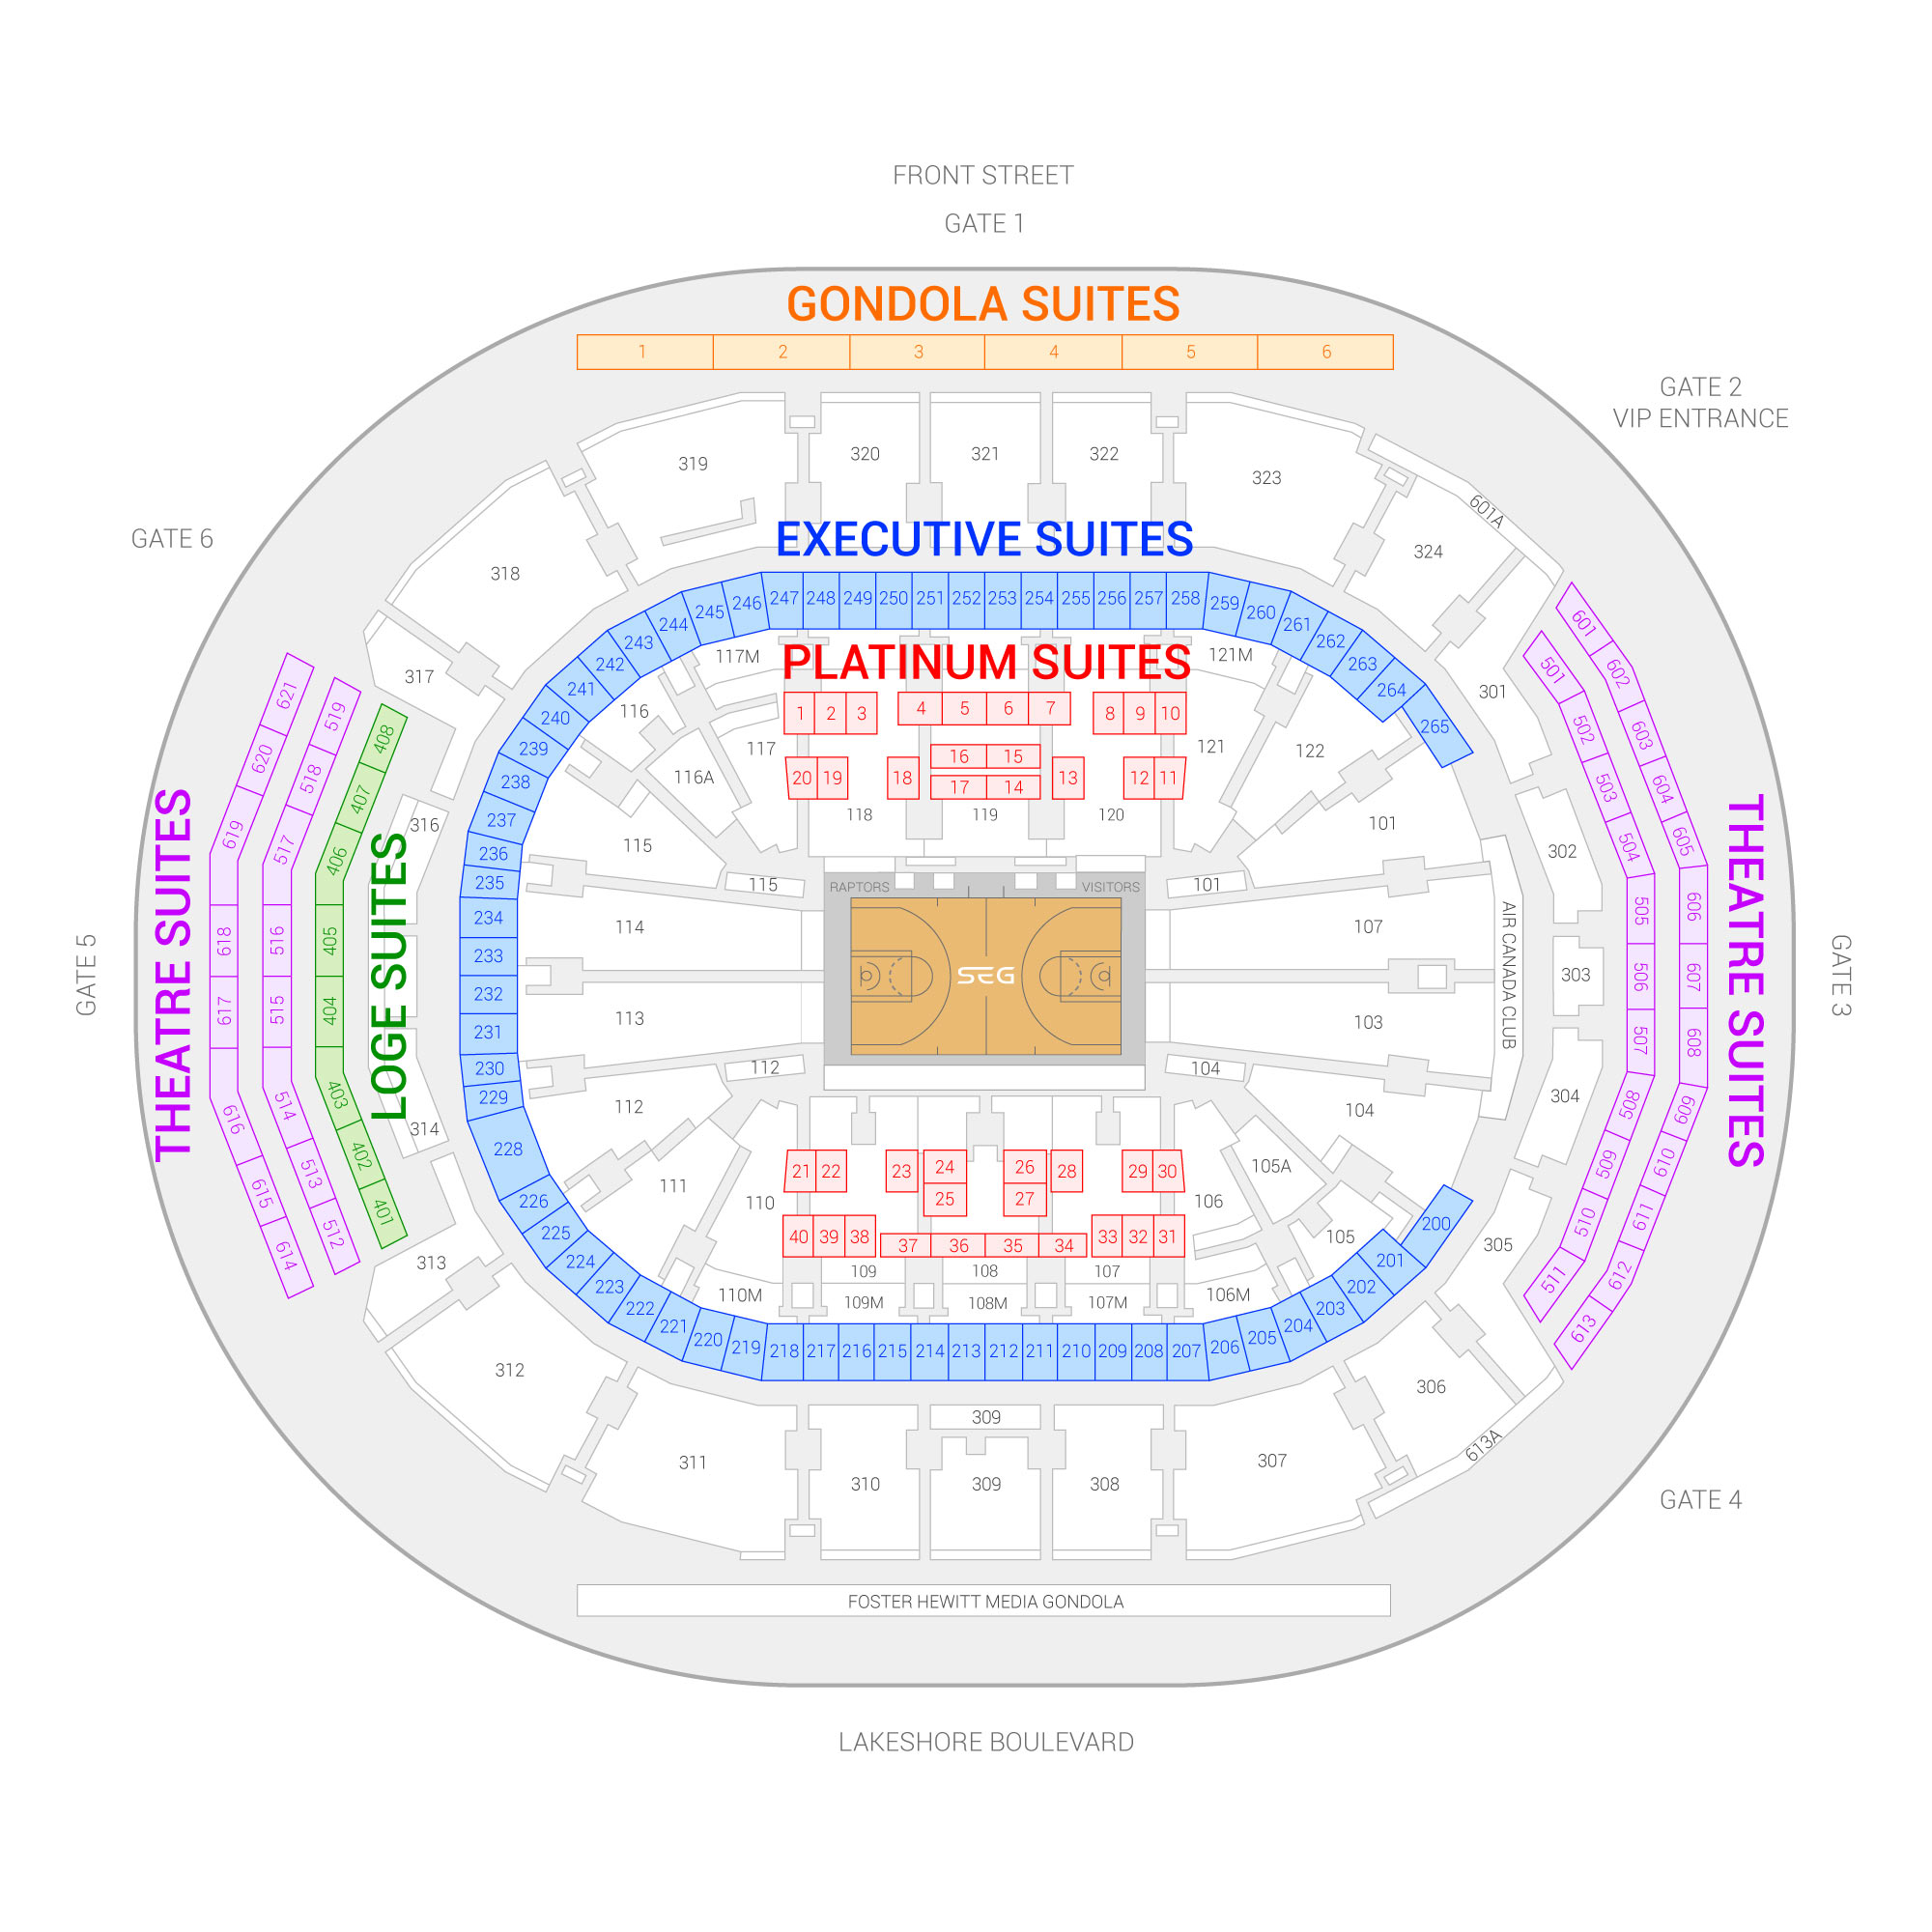 Scotiabank Arena / Toronto Raptors Suite Map and Seating Chart